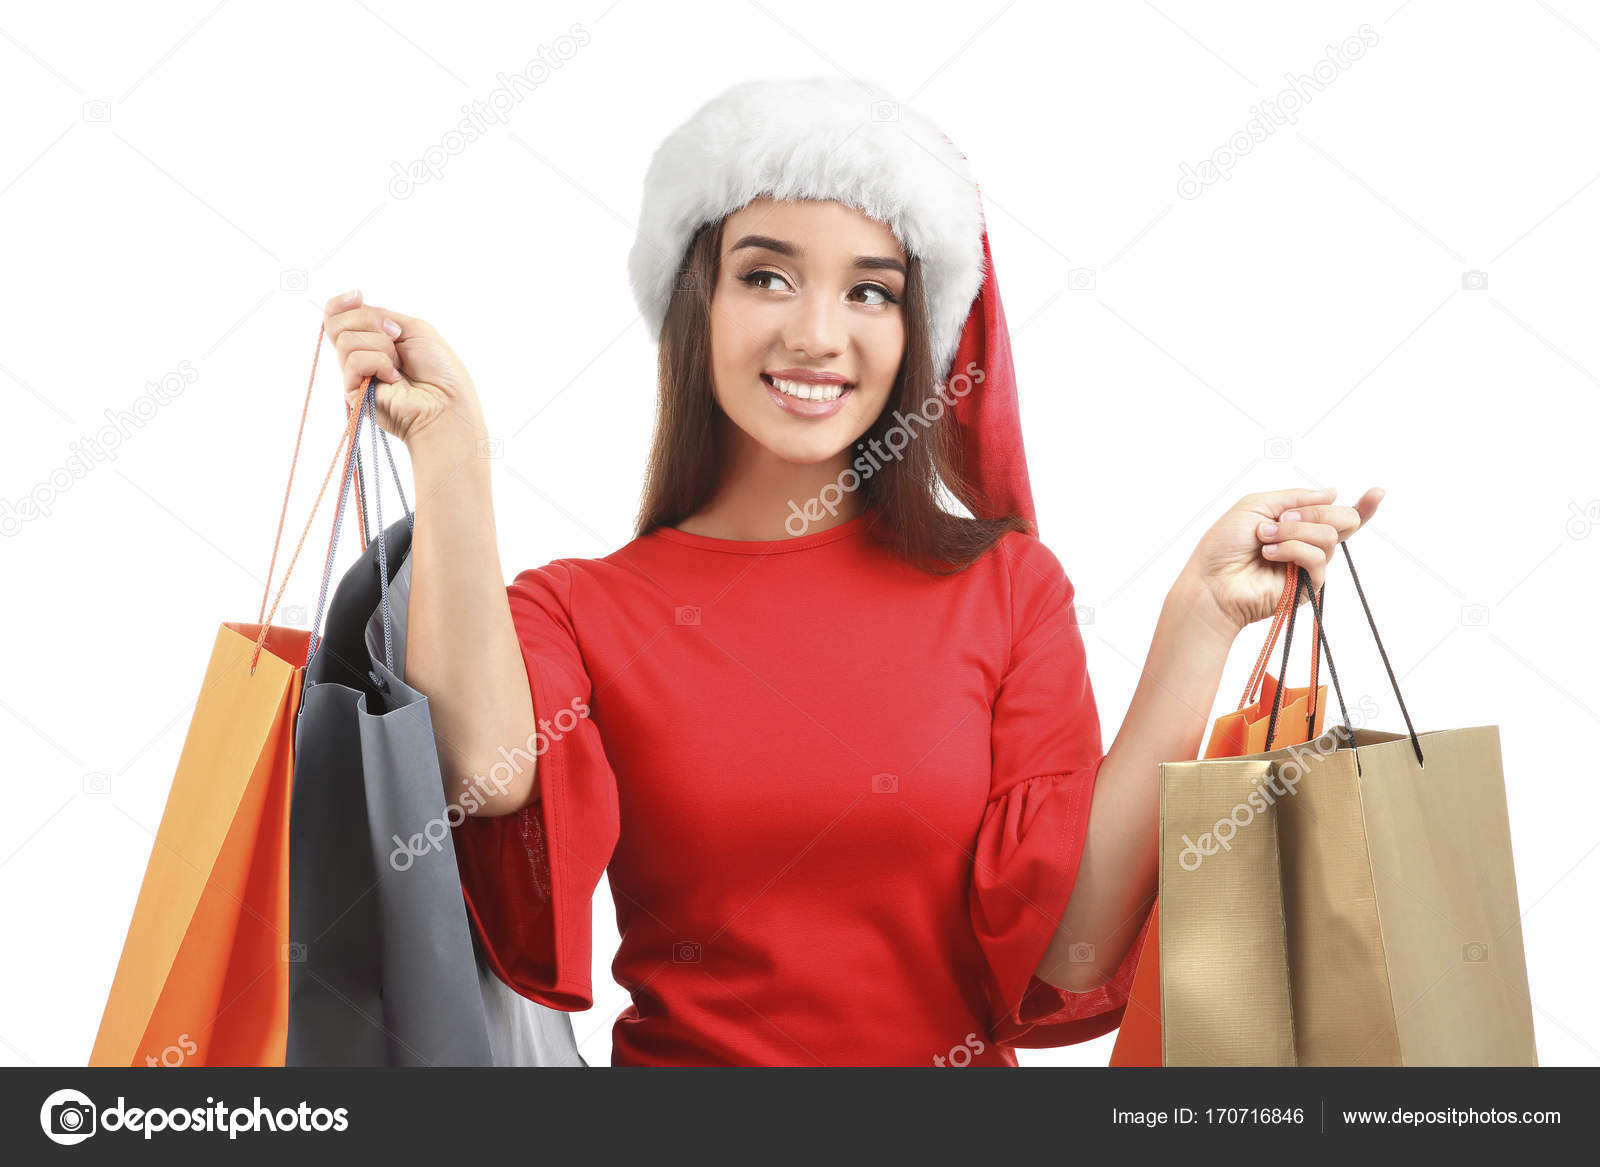 36ae3d25d04ec Young woman in Santa hat holding colorful shopping bags on white  background. Boxing day concept